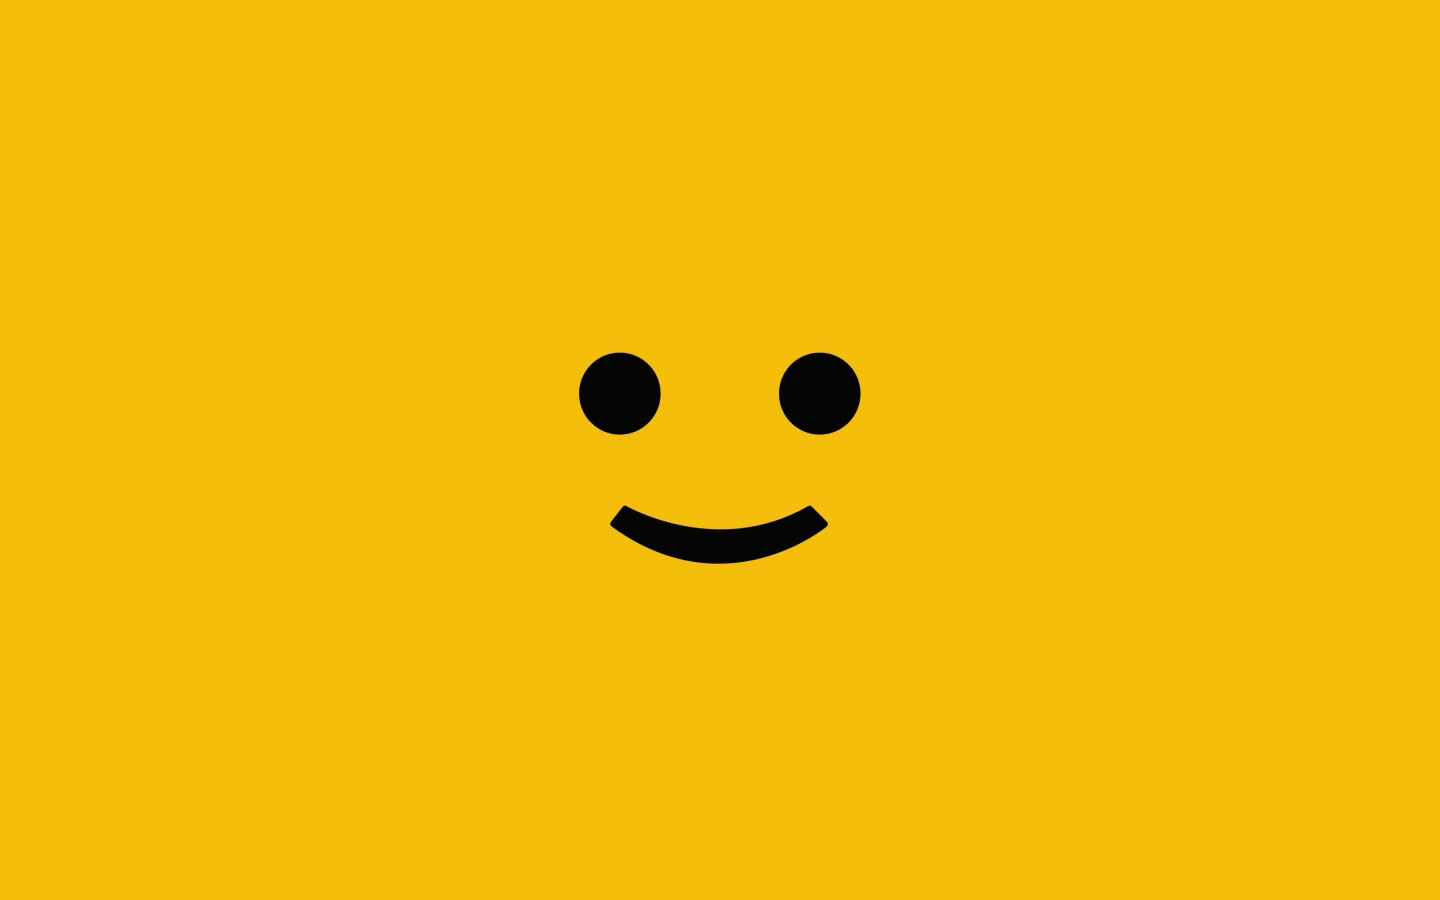 Wallpapers   Happy Face Yellow wallpaper 1440x900